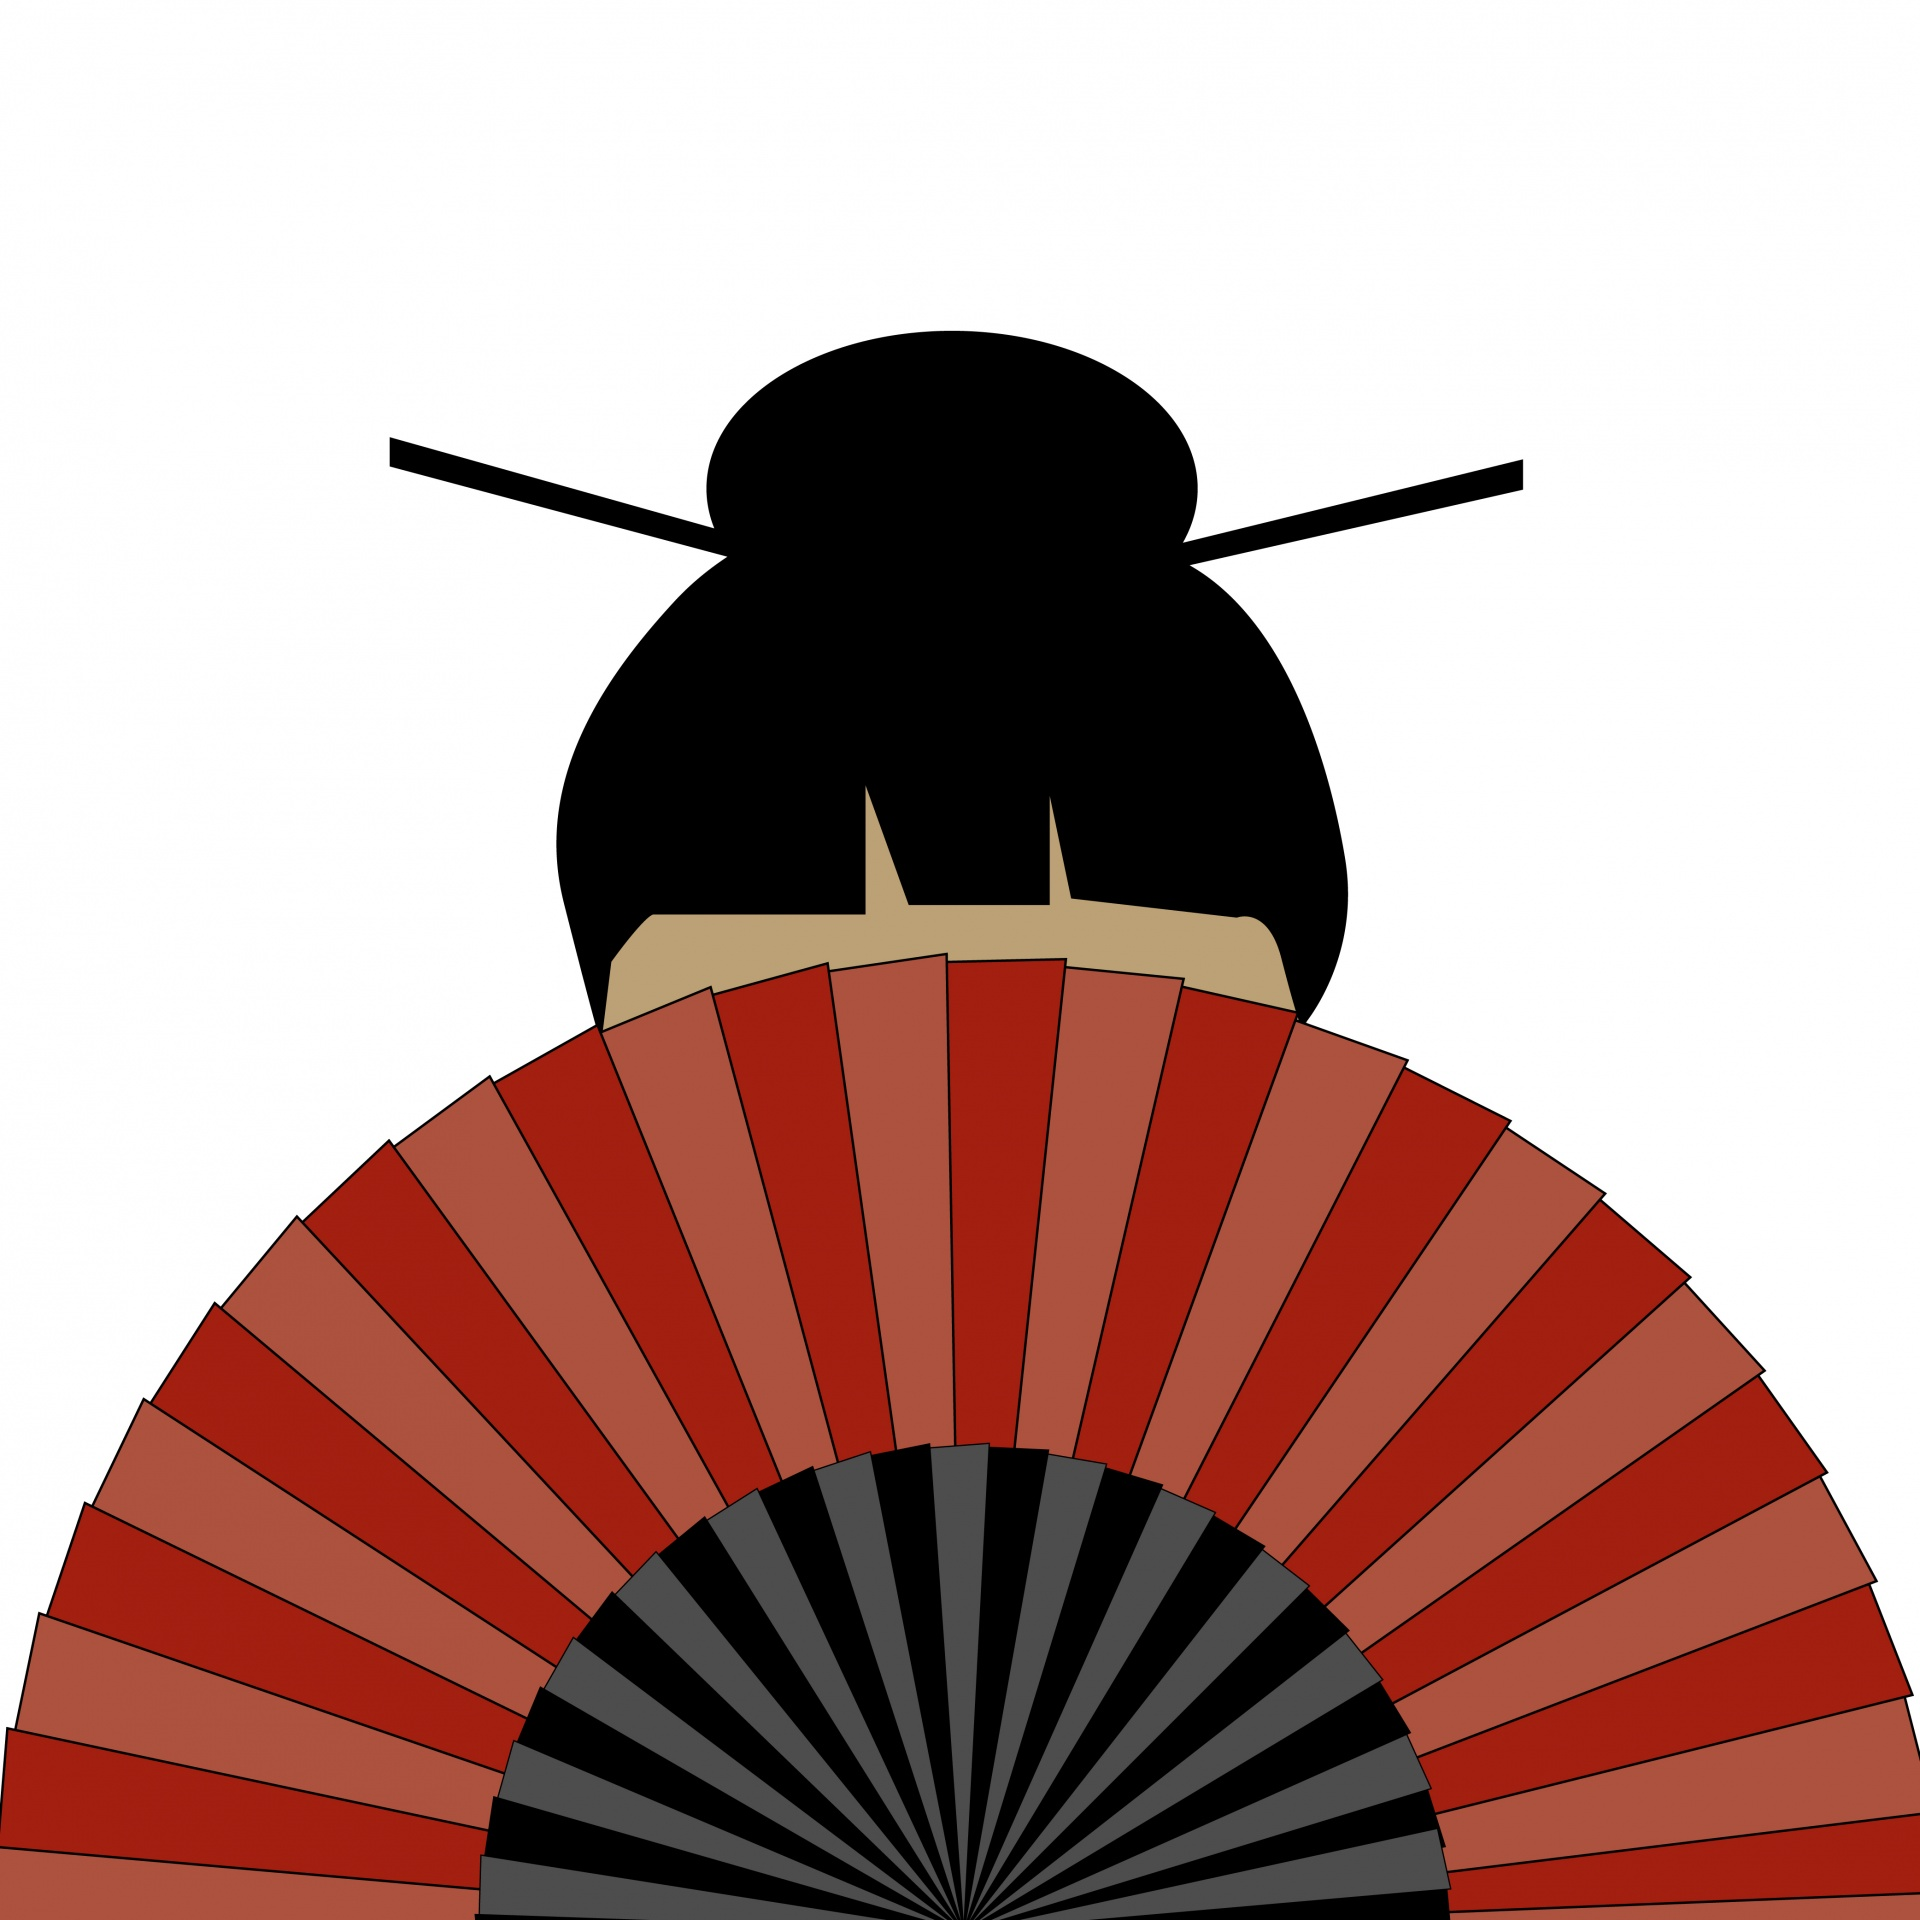 1920x1920 Geisha Girl With Fan Free Stock Photo